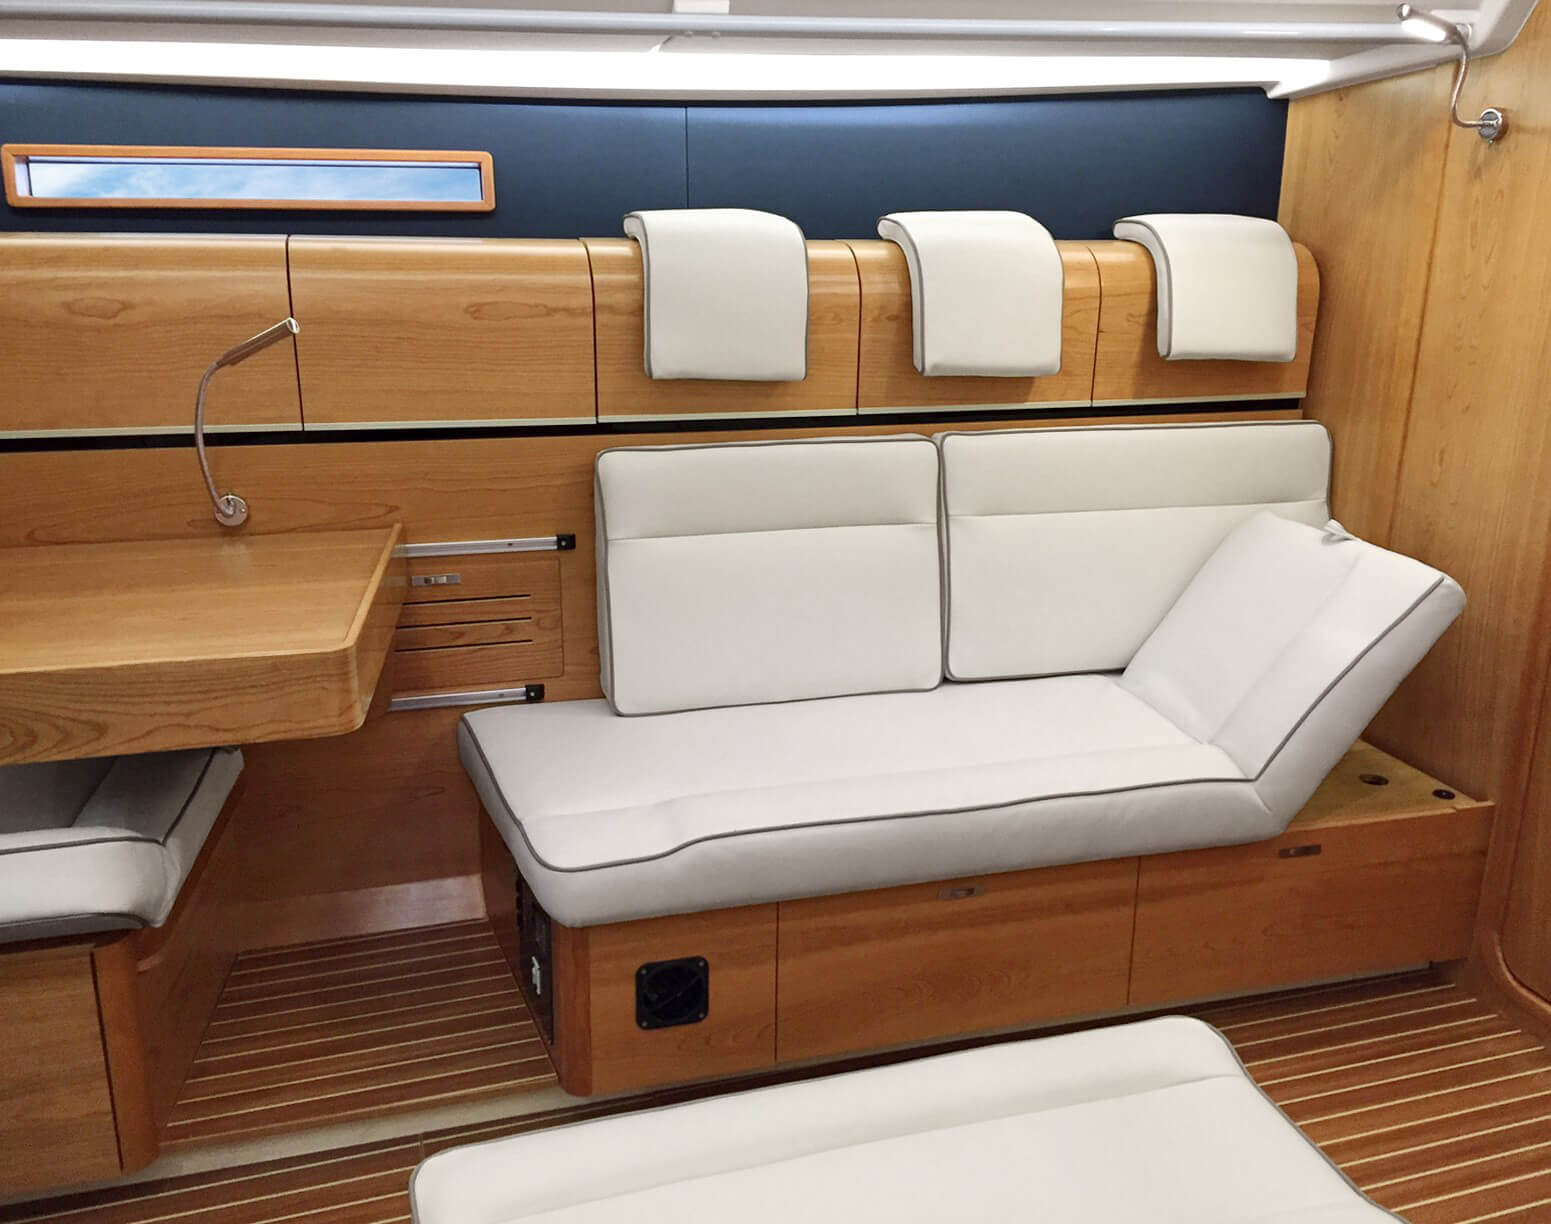 Dehler 42 Interno salone | B2 Layout con chaiselongue regolabile | Dehler